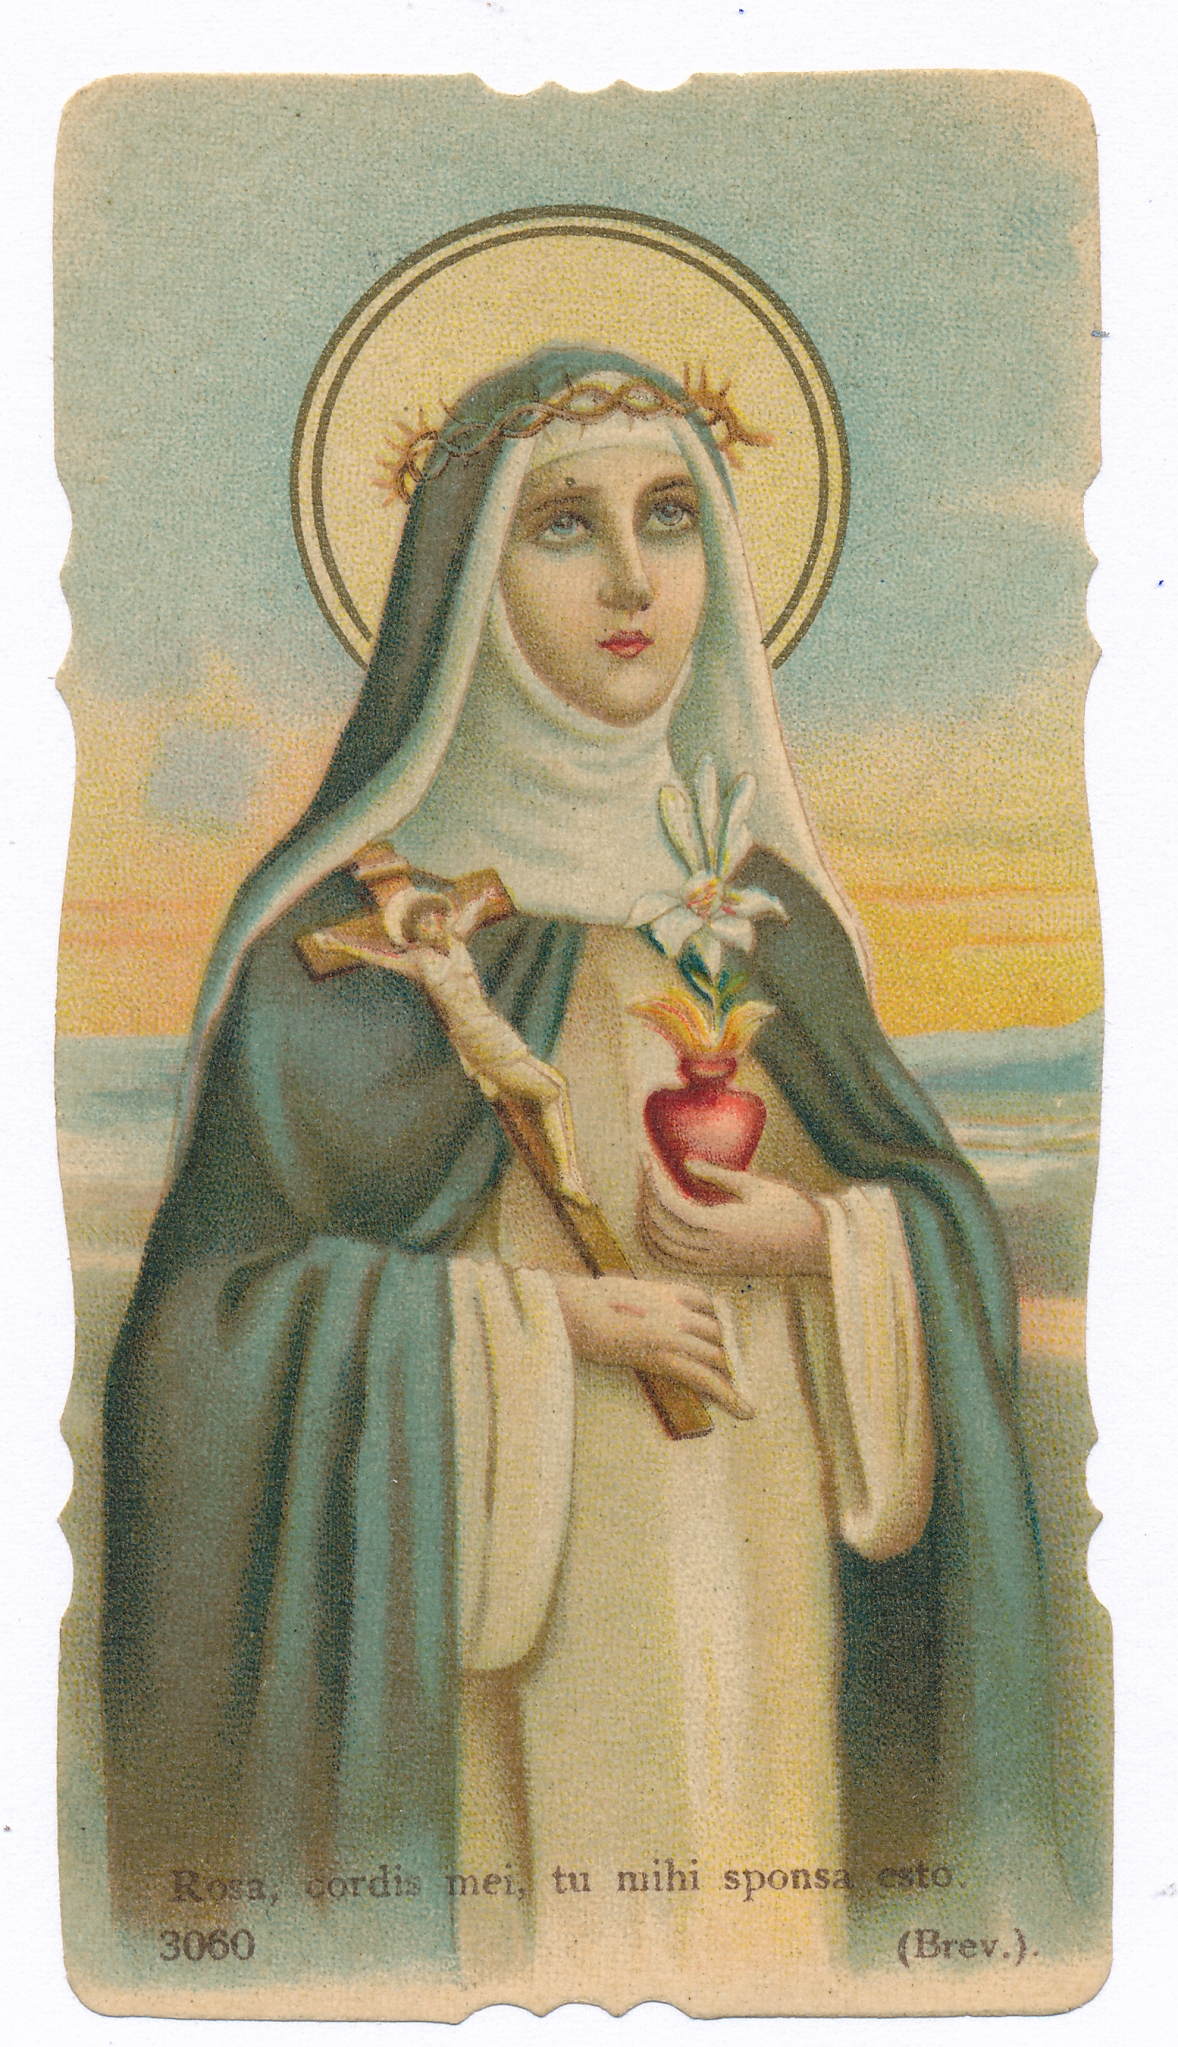 a biography of saint catherine aka caterina benincasa Letters of catherine benincasa saint catherine of siena as seen in her letters  biography read online in browser here.